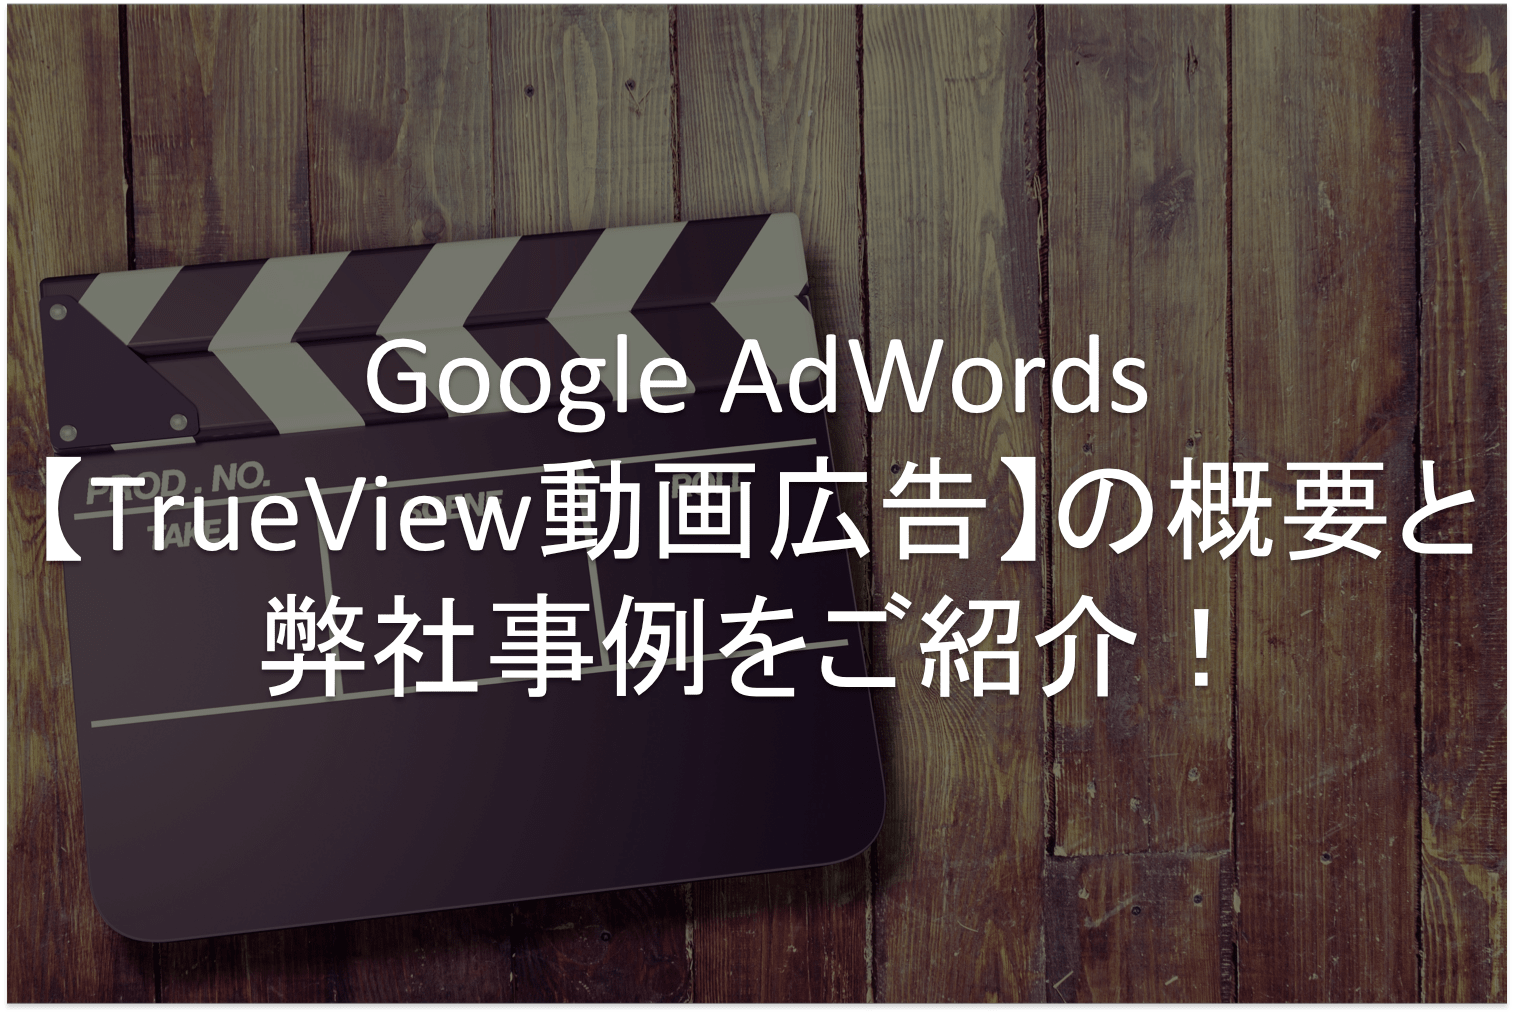 Google AdWords,動画